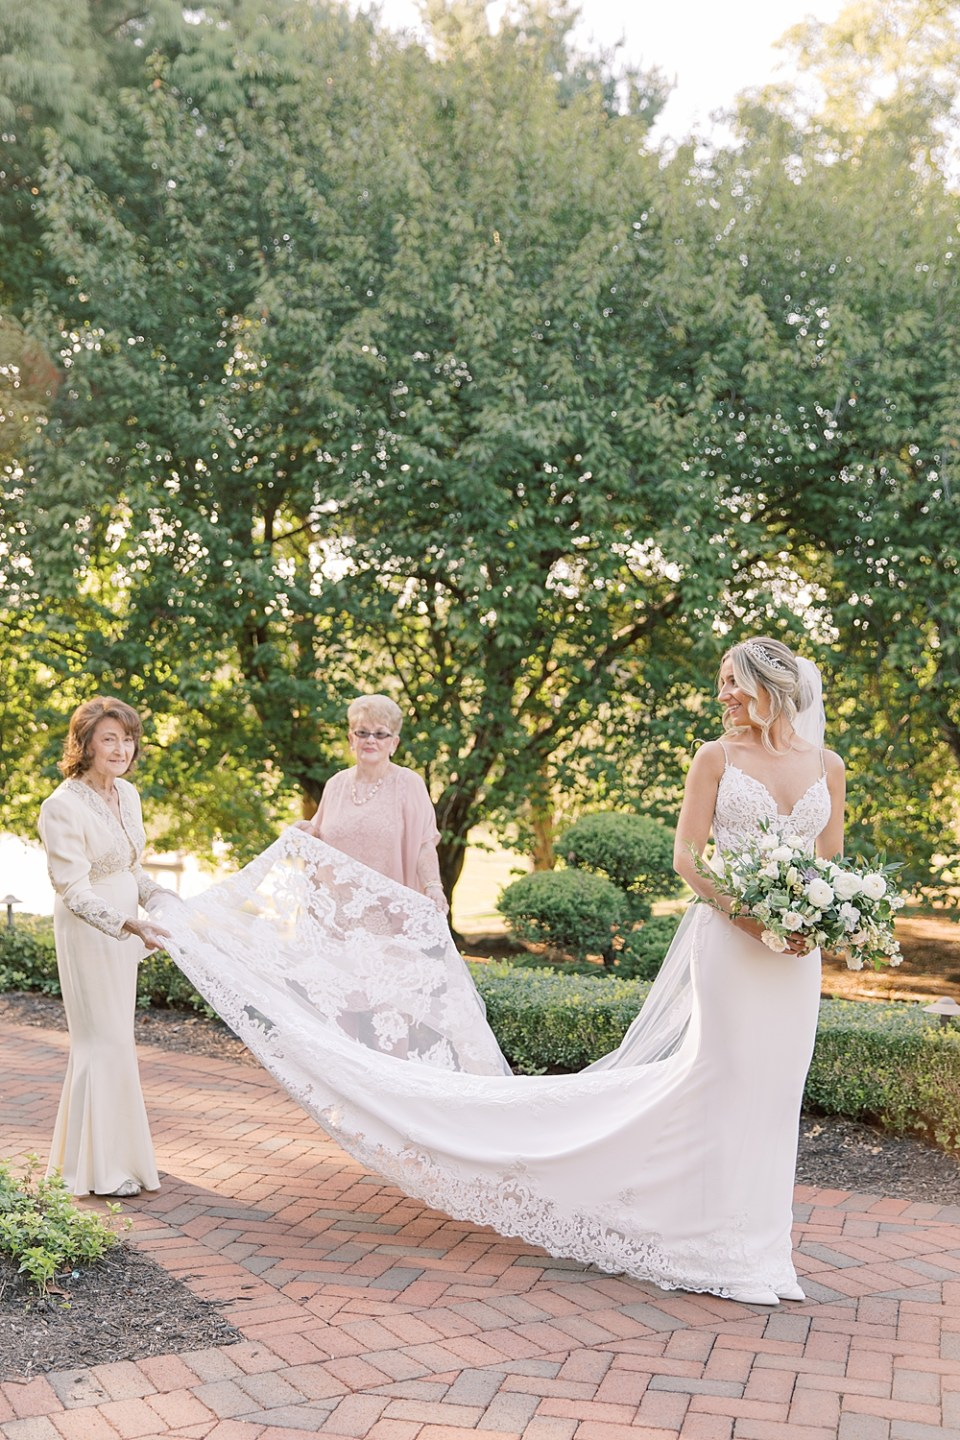 Bride's grandmother's helping her get ready | ashford estate wedding | sarah canning photography